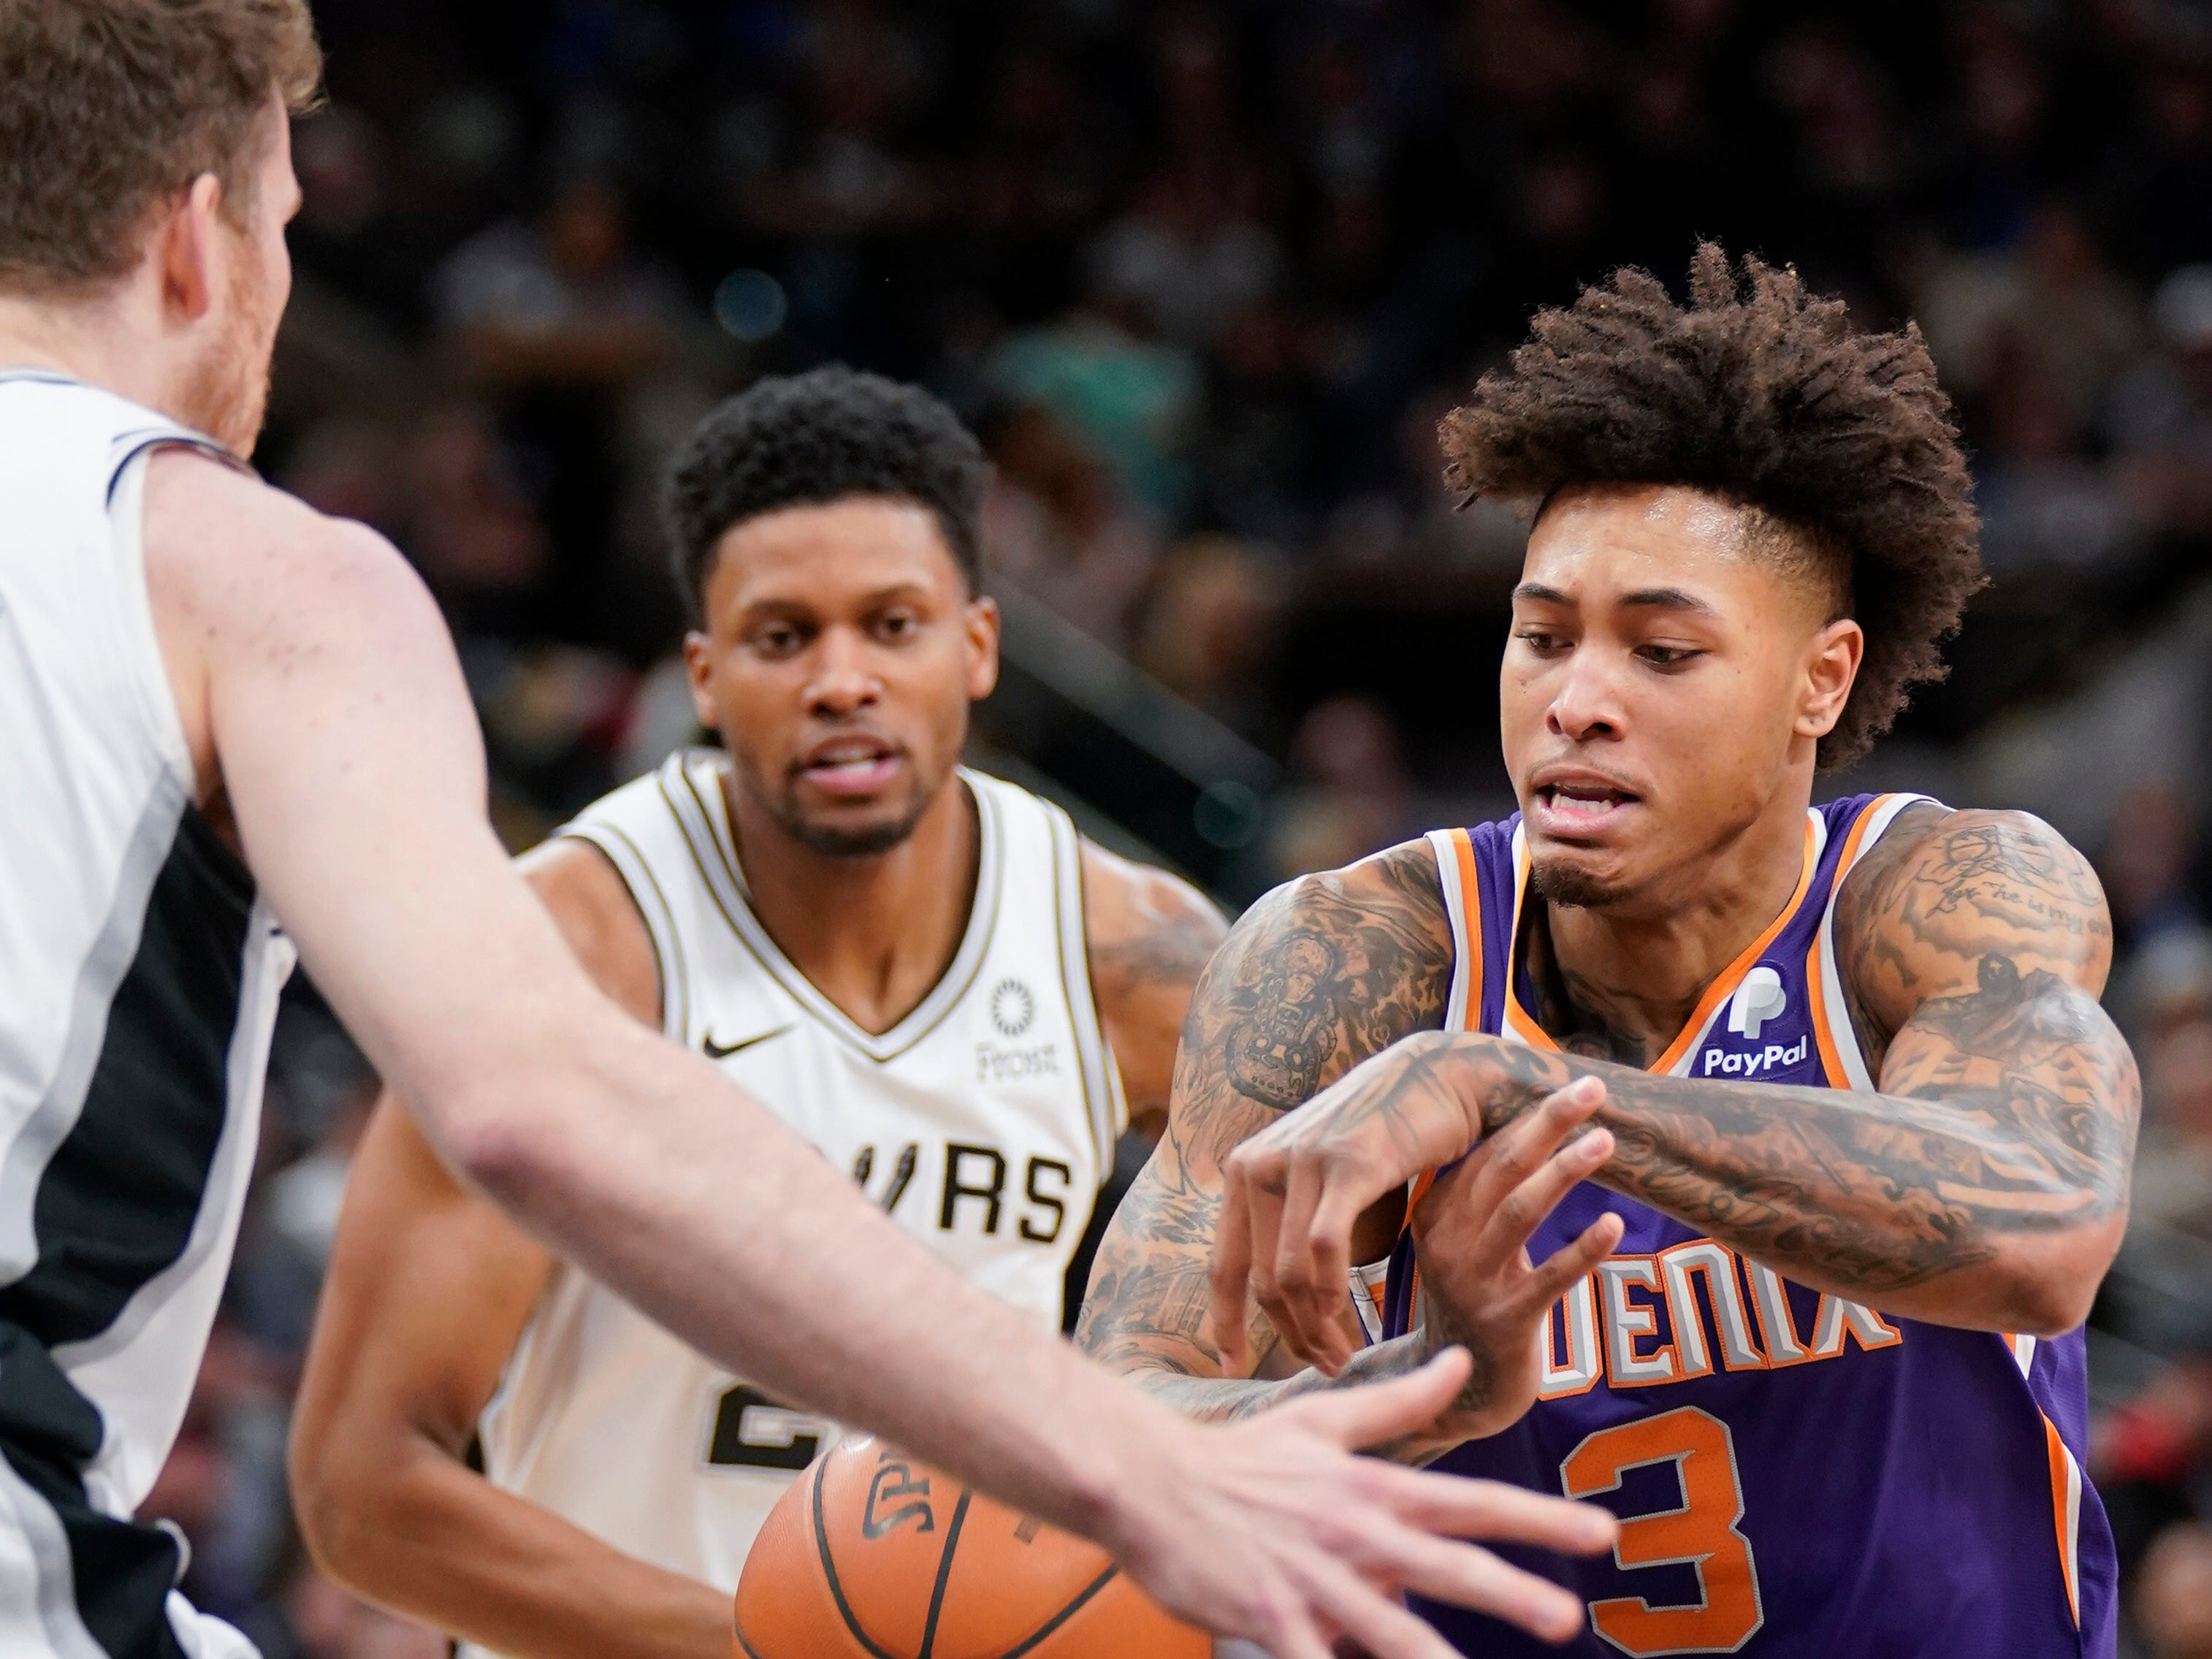 Phoenix Suns' Kelly Oubre, Jr. (3) loses the ball as he drives against San Antonio Spurs' Jakob Poeltl, left, and Rudy Gay during the first half of an NBA basketball game, Tuesday, Jan. 29, 2019, in San Antonio. (AP Photo/Darren Abate)